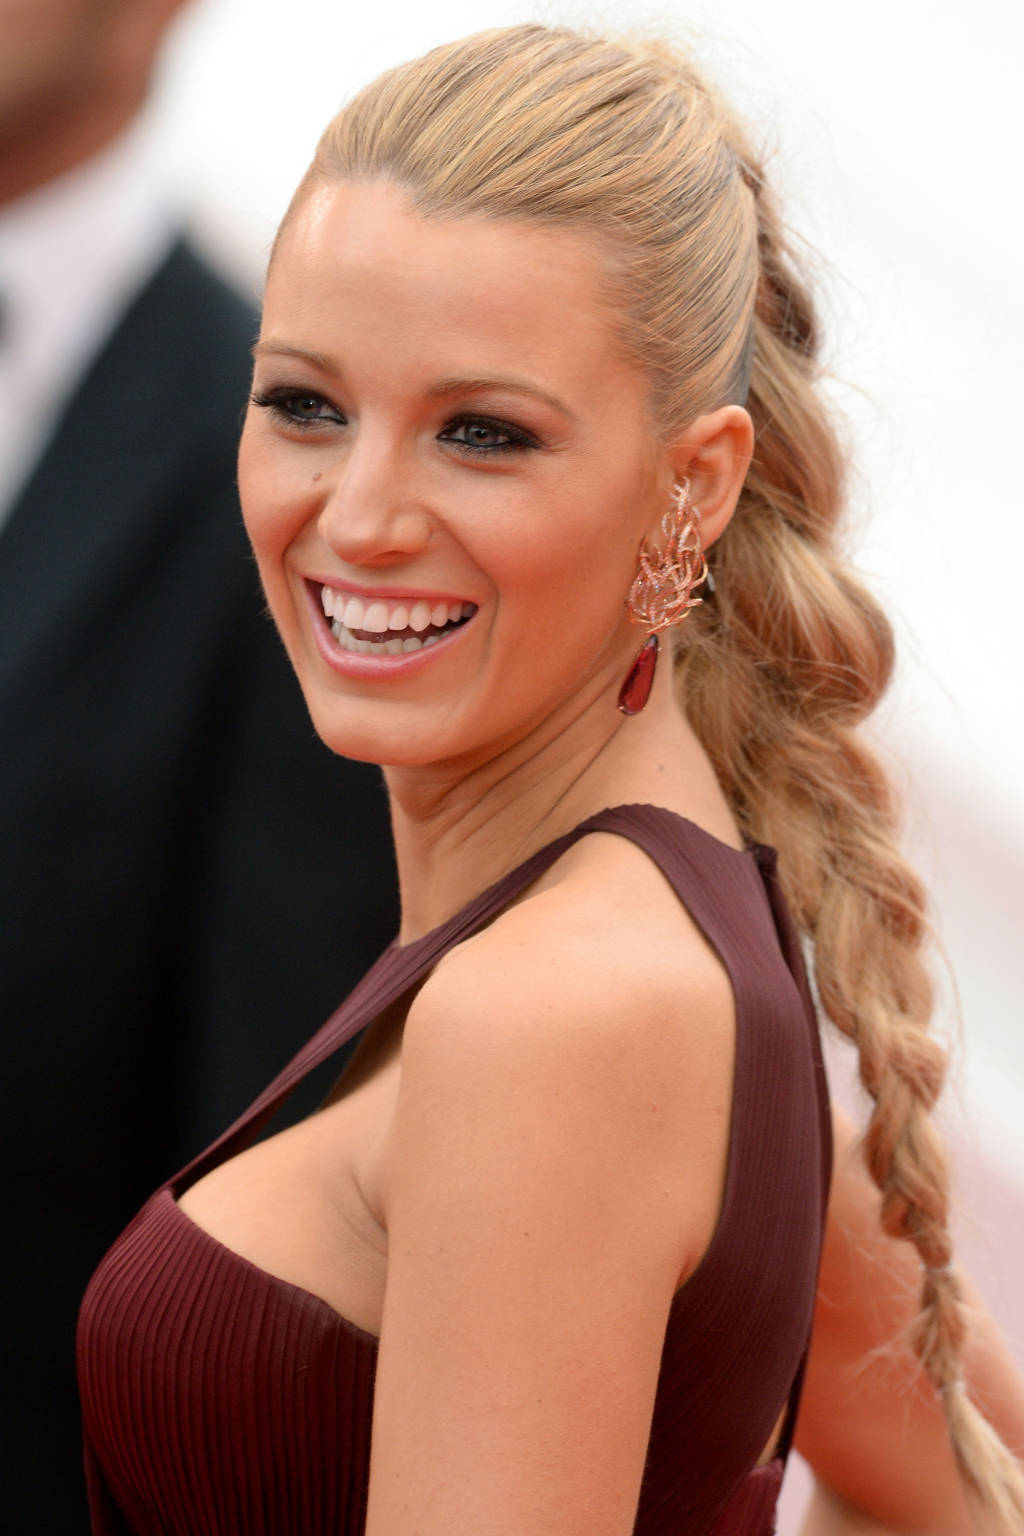 Admirable Best Braids Hairstyles For New Year 2015 Hairstyles 2016 Hair Short Hairstyles Gunalazisus